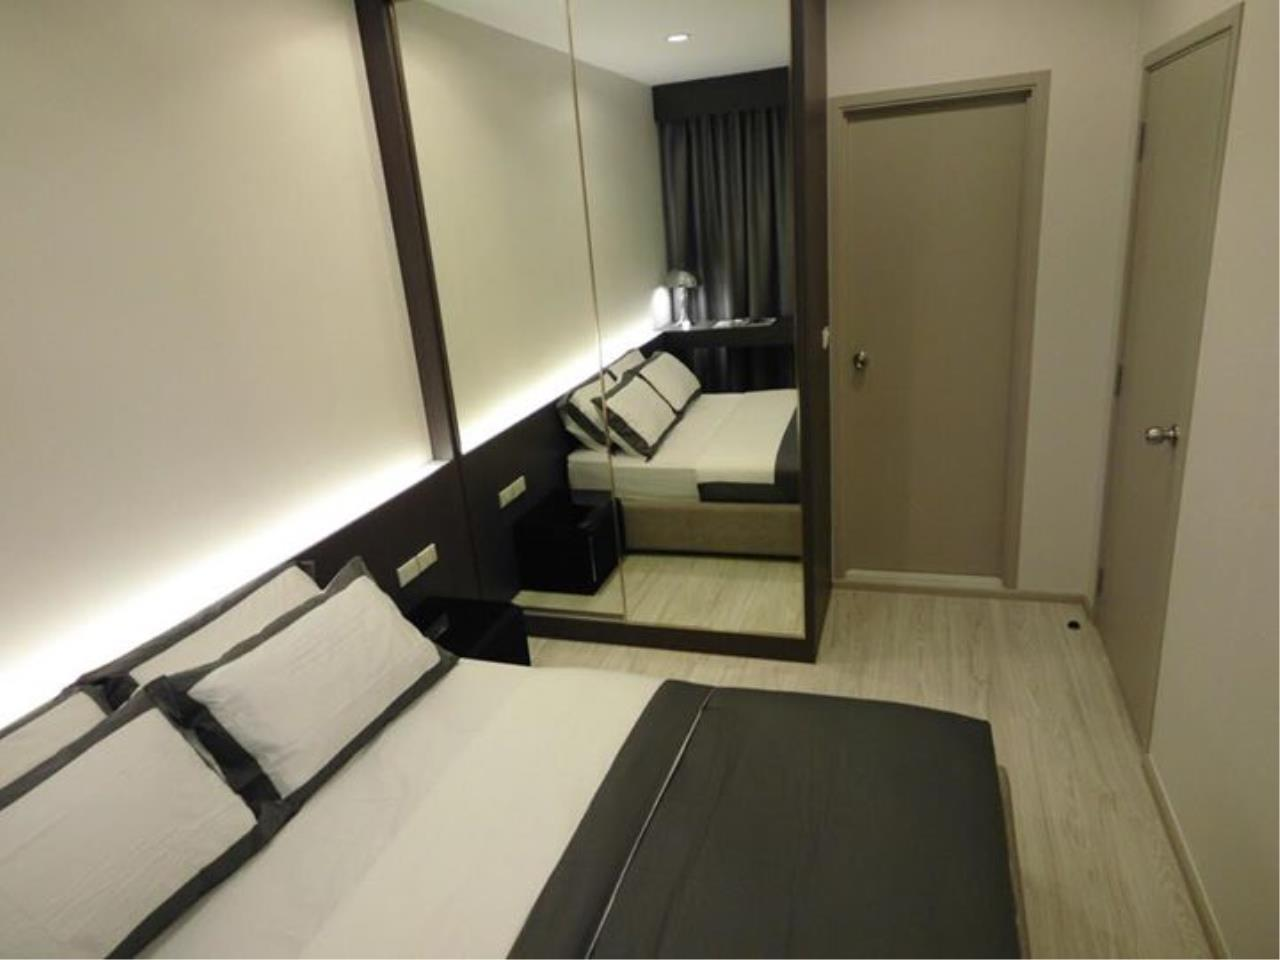 RE/MAX All Star Realty Agency's Ideo Mobi Eastgate, 1 bedroom, high floor for rent. Near BTS Bangna 9